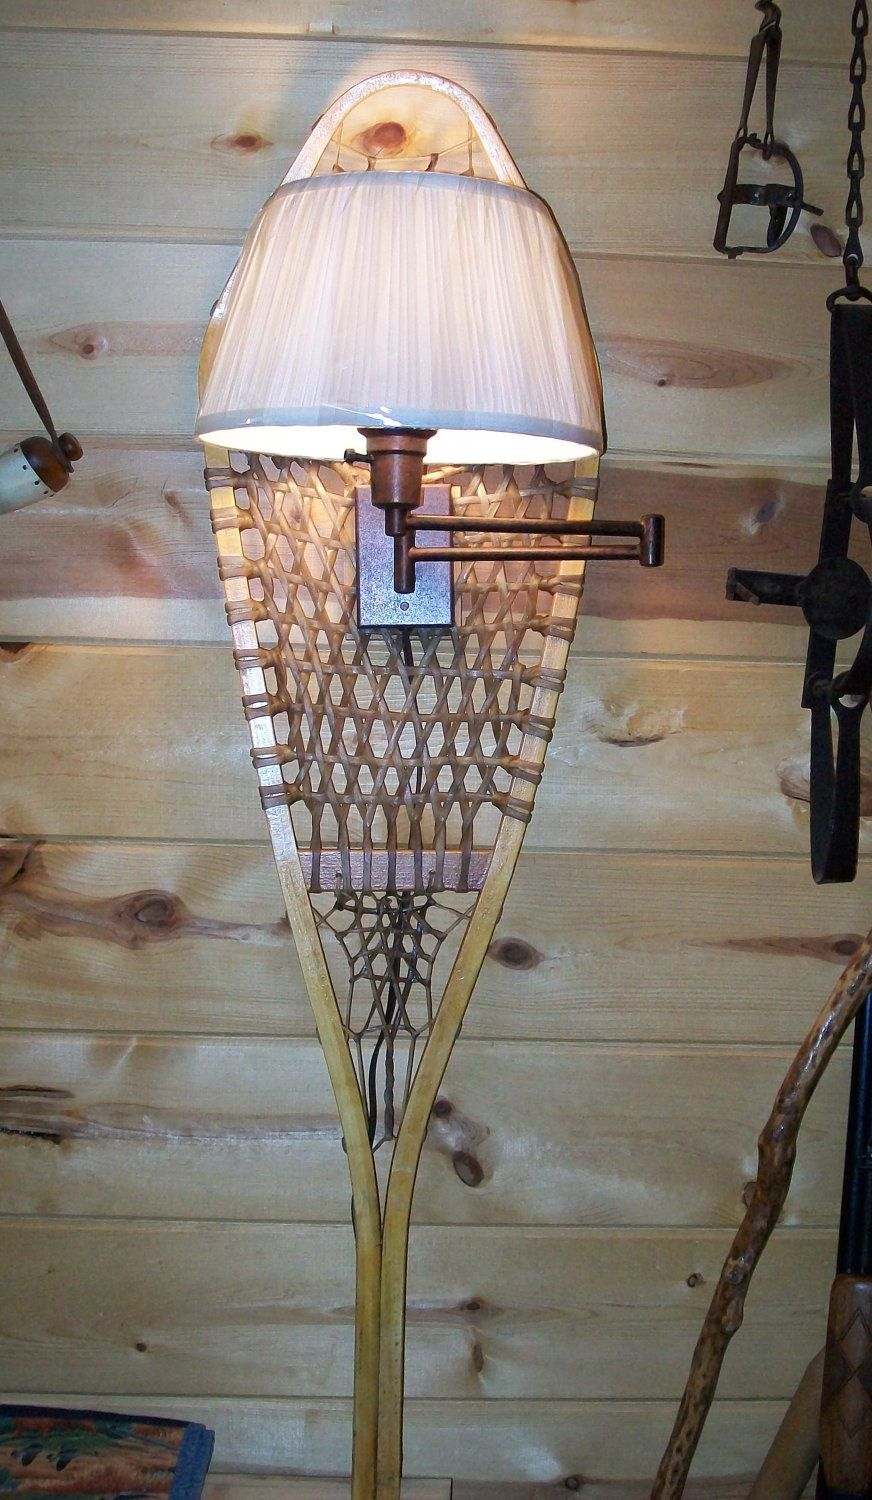 Rustic Snowshoe wall lamp cabin lodge decor light